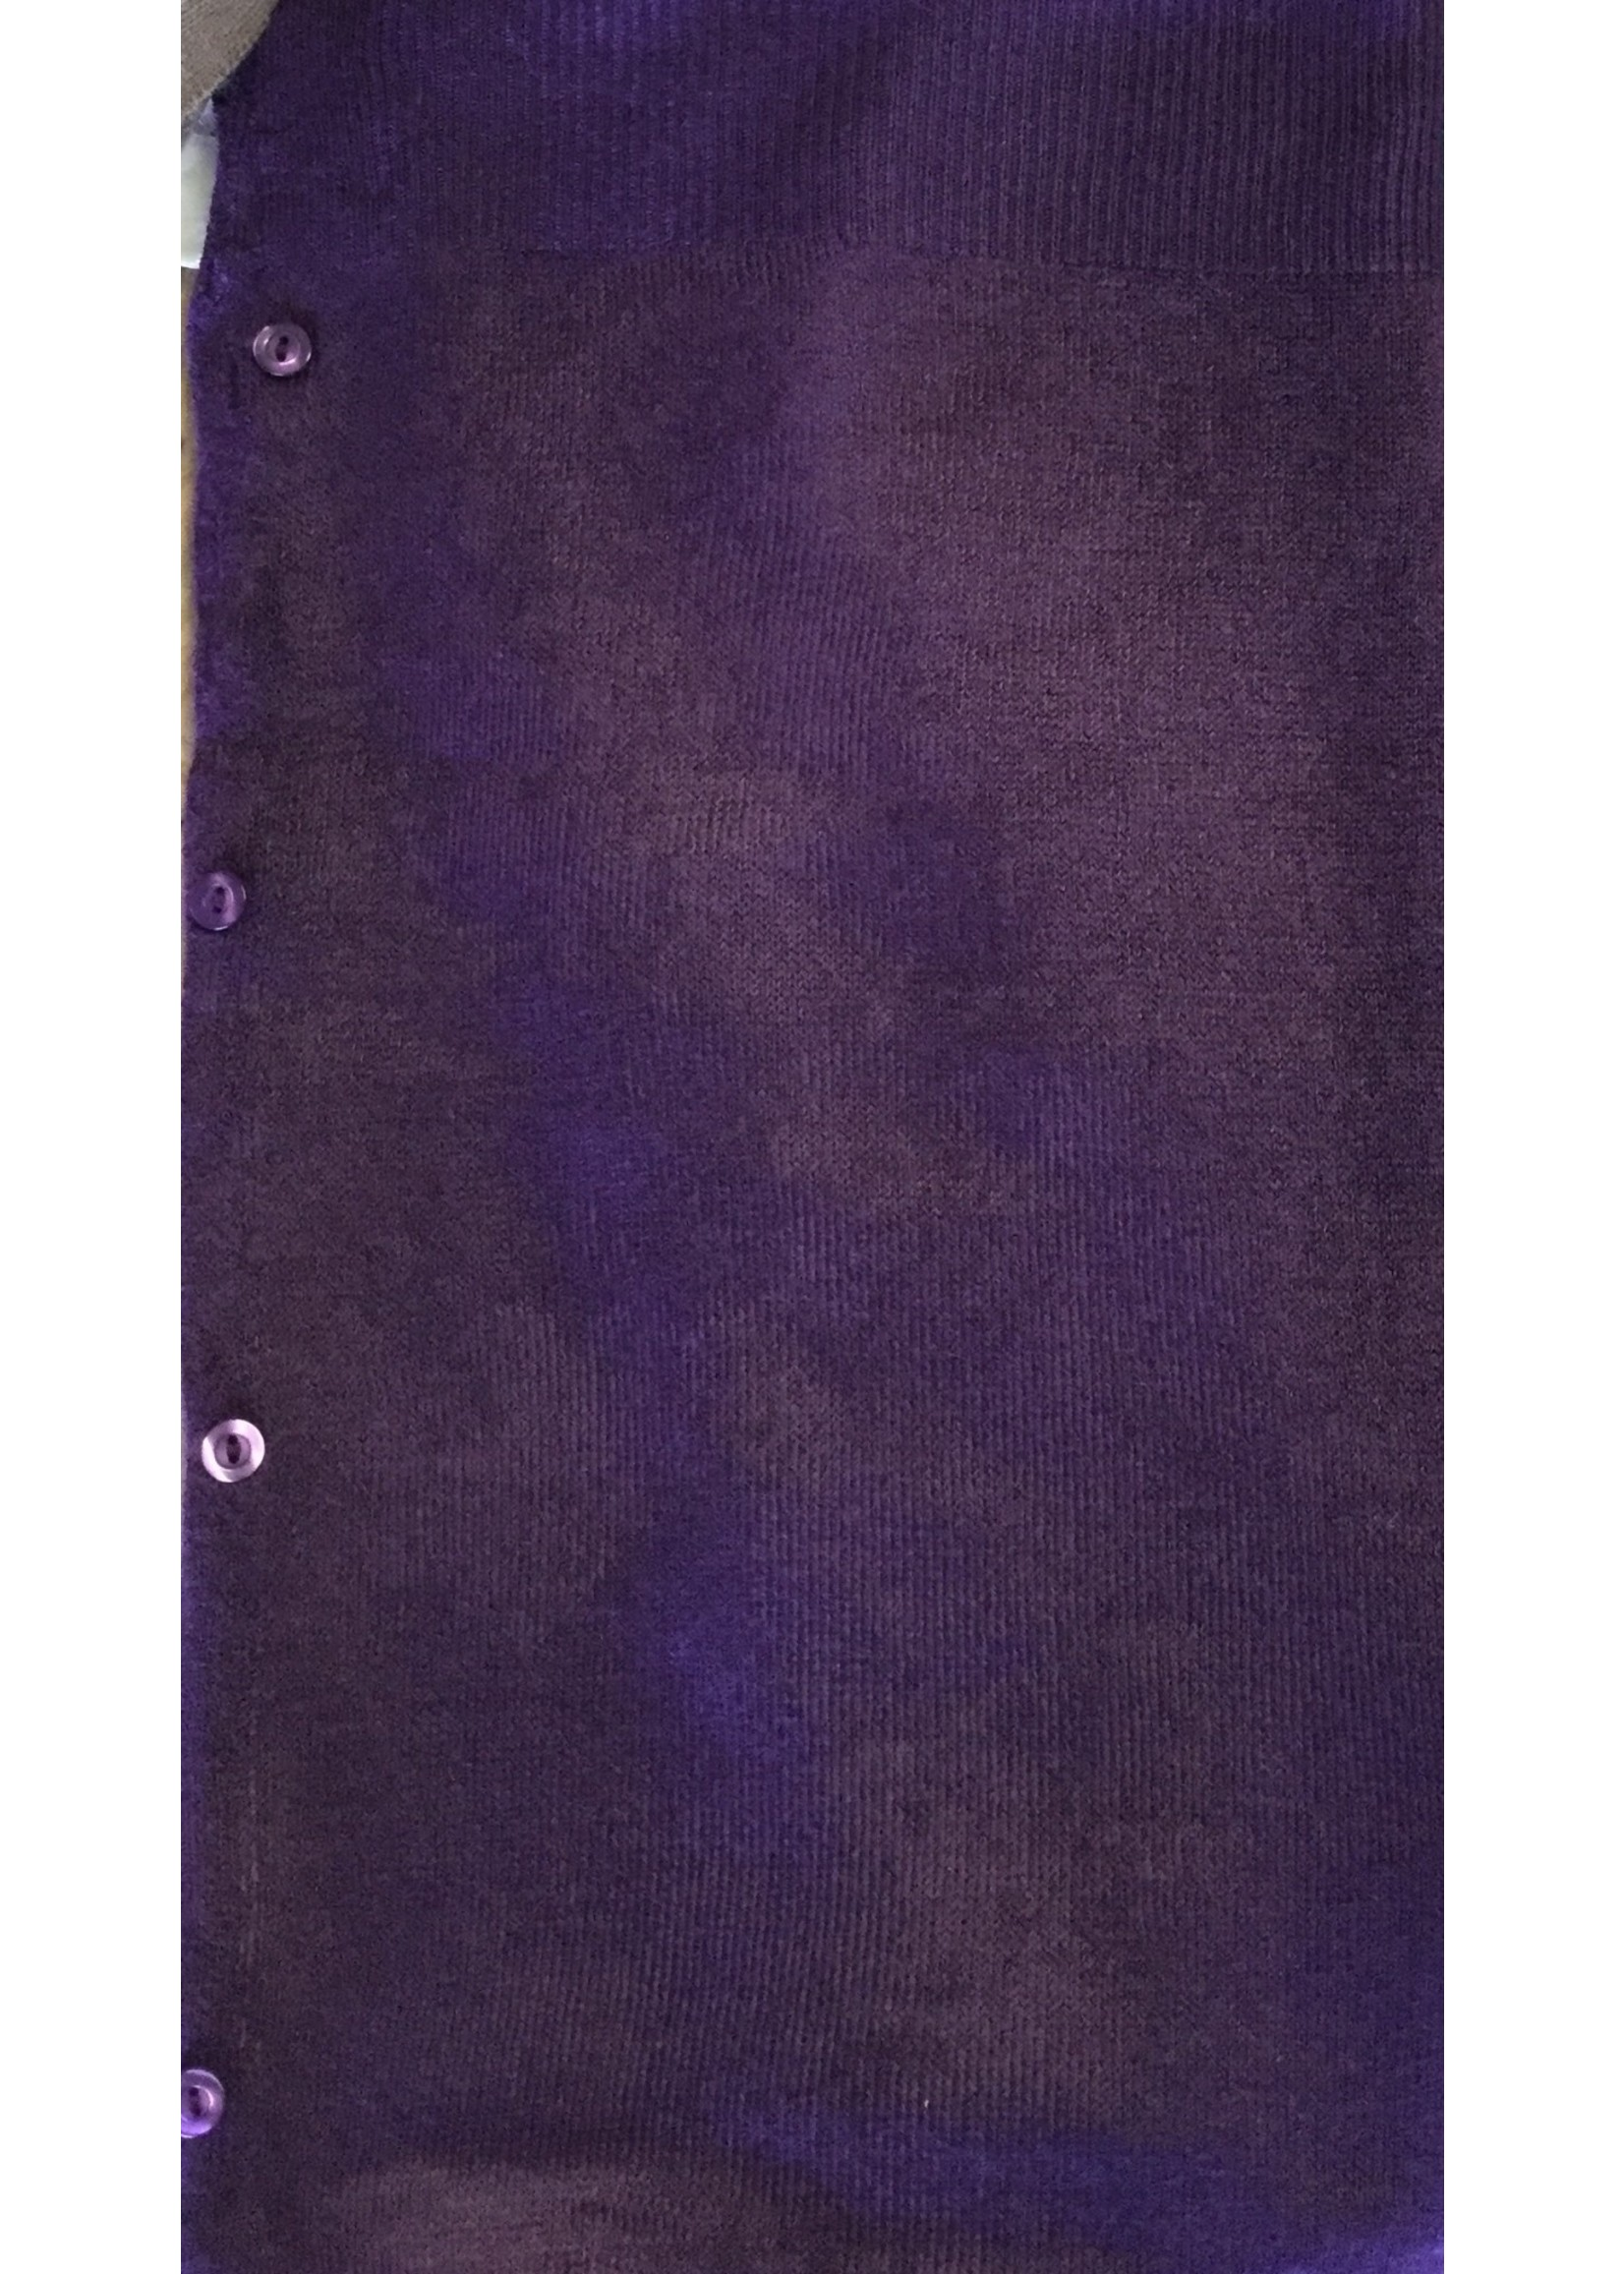 SIMPLY NOELLE SOLID BOARD WRAP IN ASSORTED COLORS